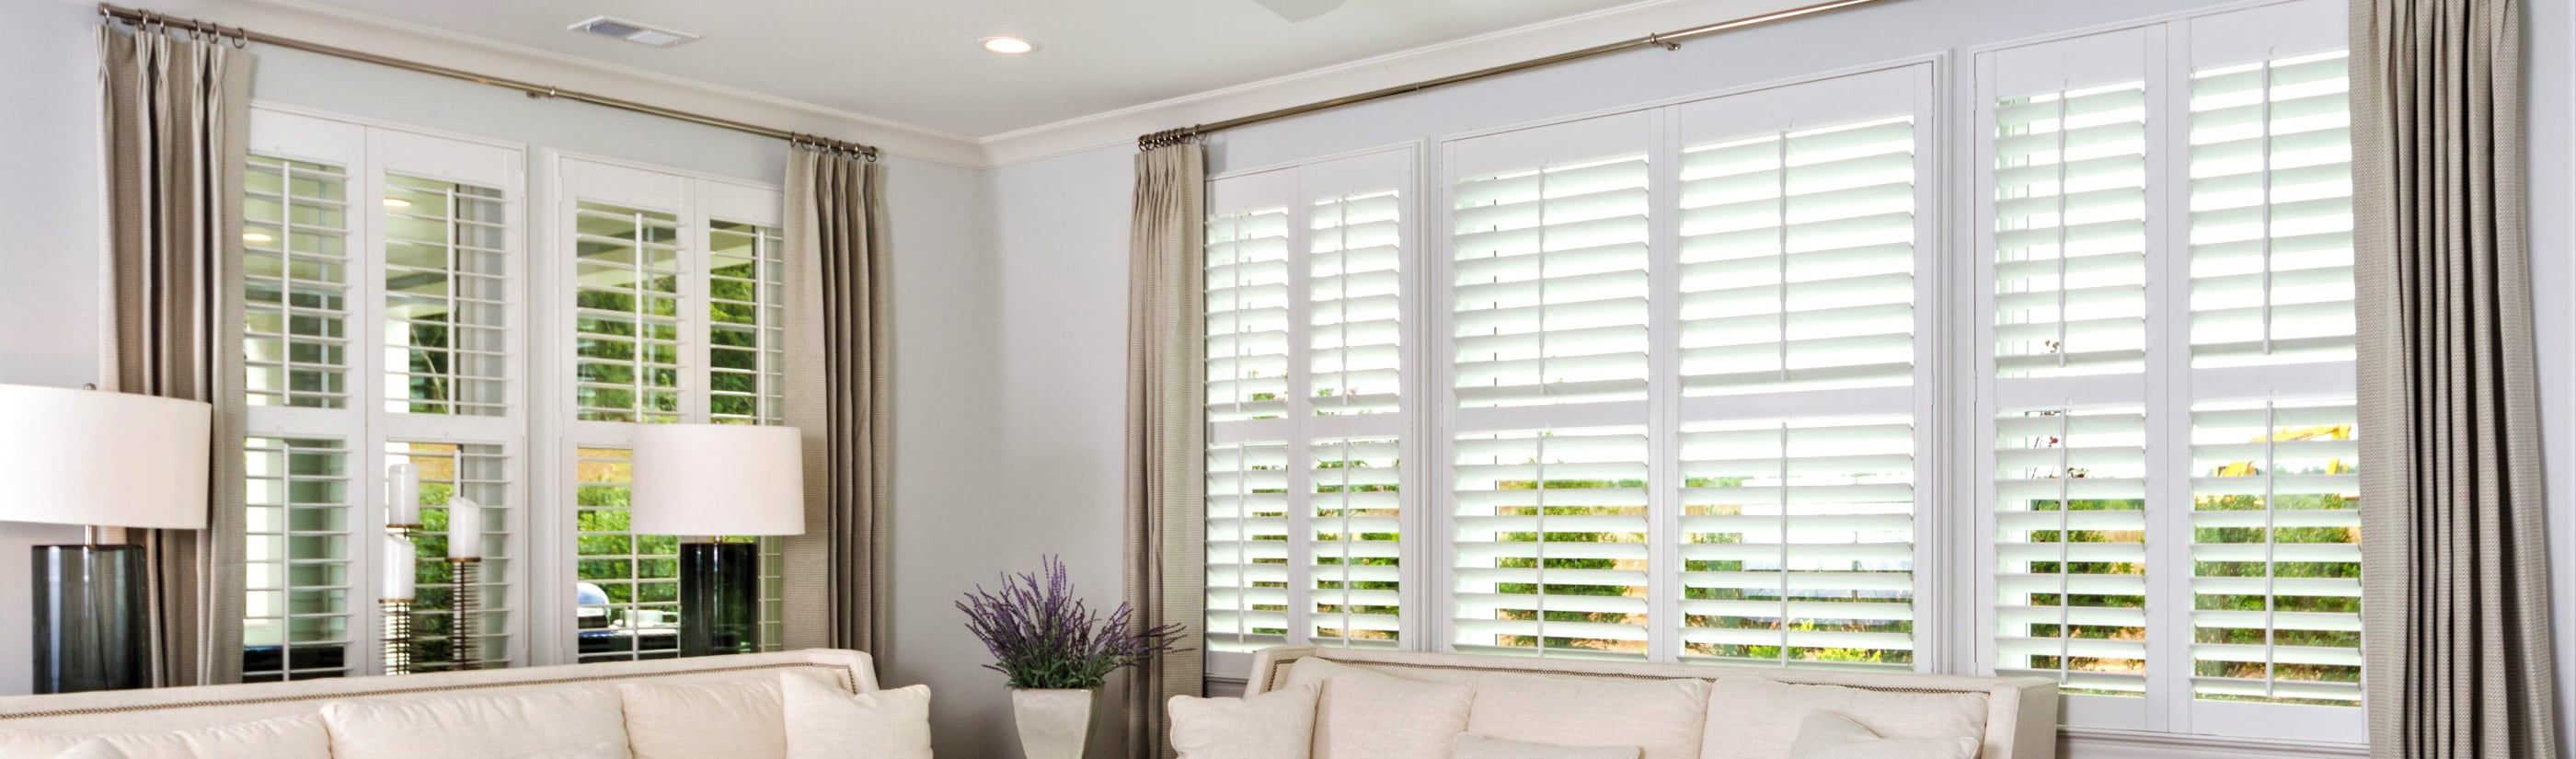 Polywood Shutters Paints In Tampa